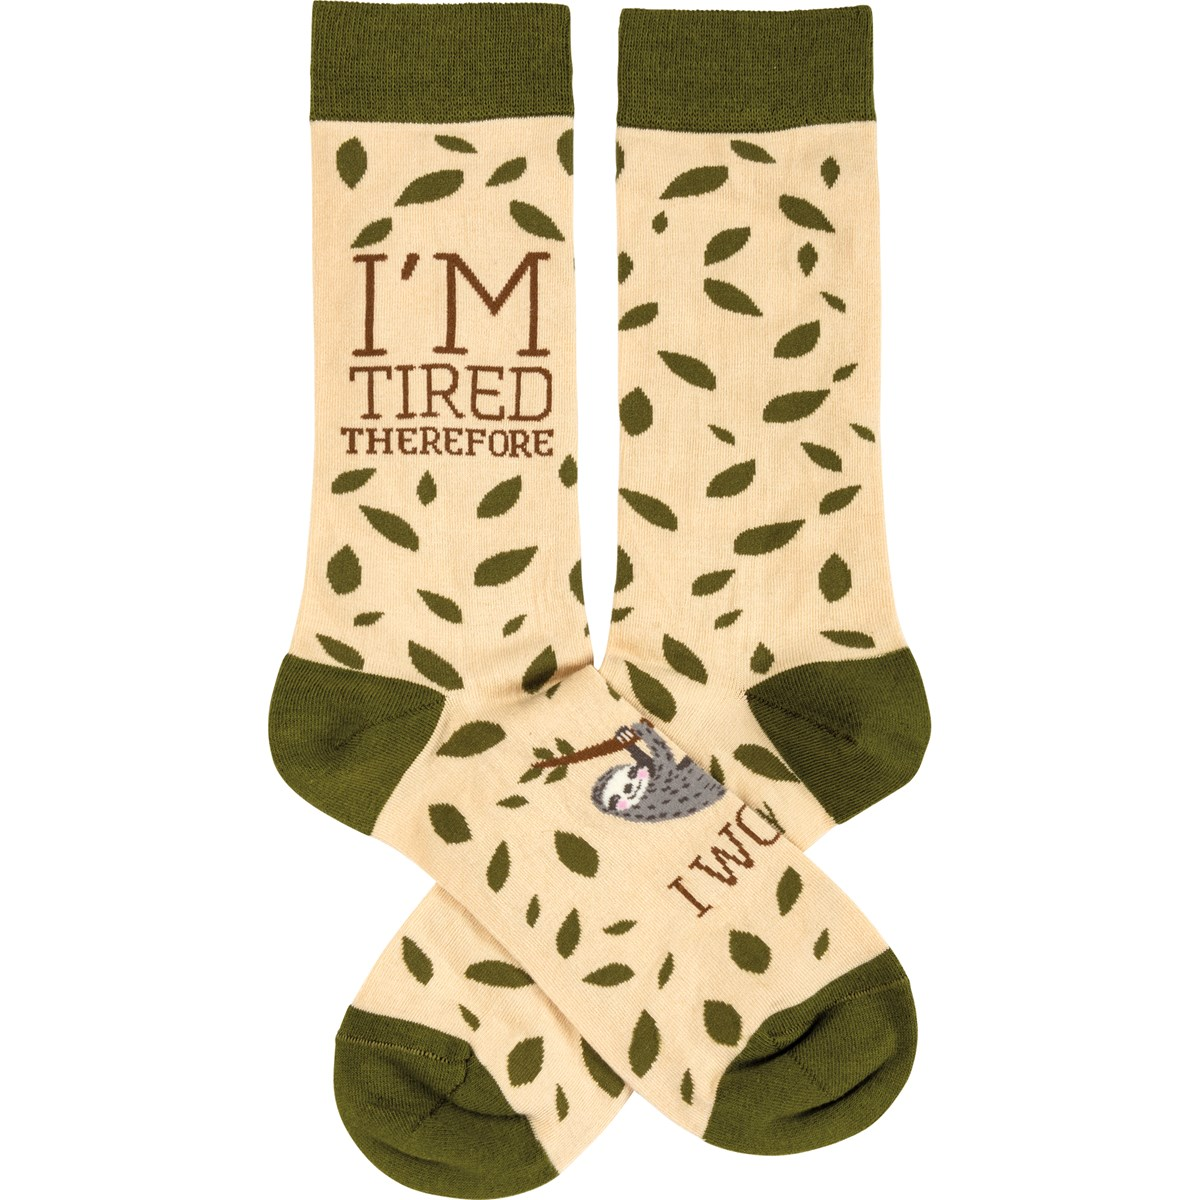 Socks - Sloth - I'm Tired Therefore I Won't - One Size Fits Most - Cotton, Nylon, Spandex